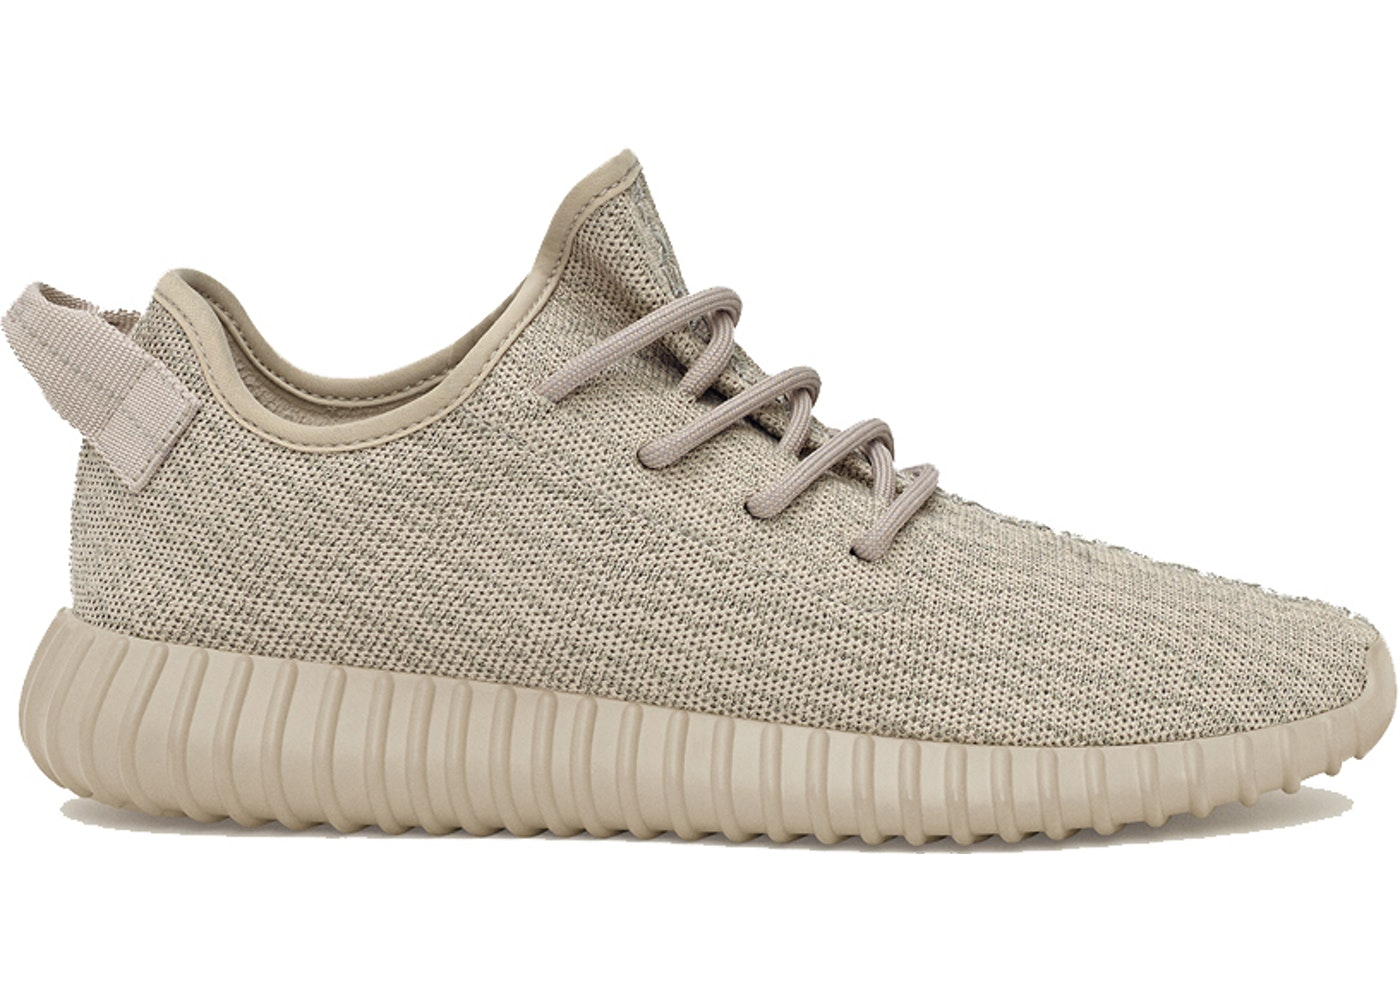 Adidas Yeezy Boost 350 Oxford Tan Review - The Brag Affair